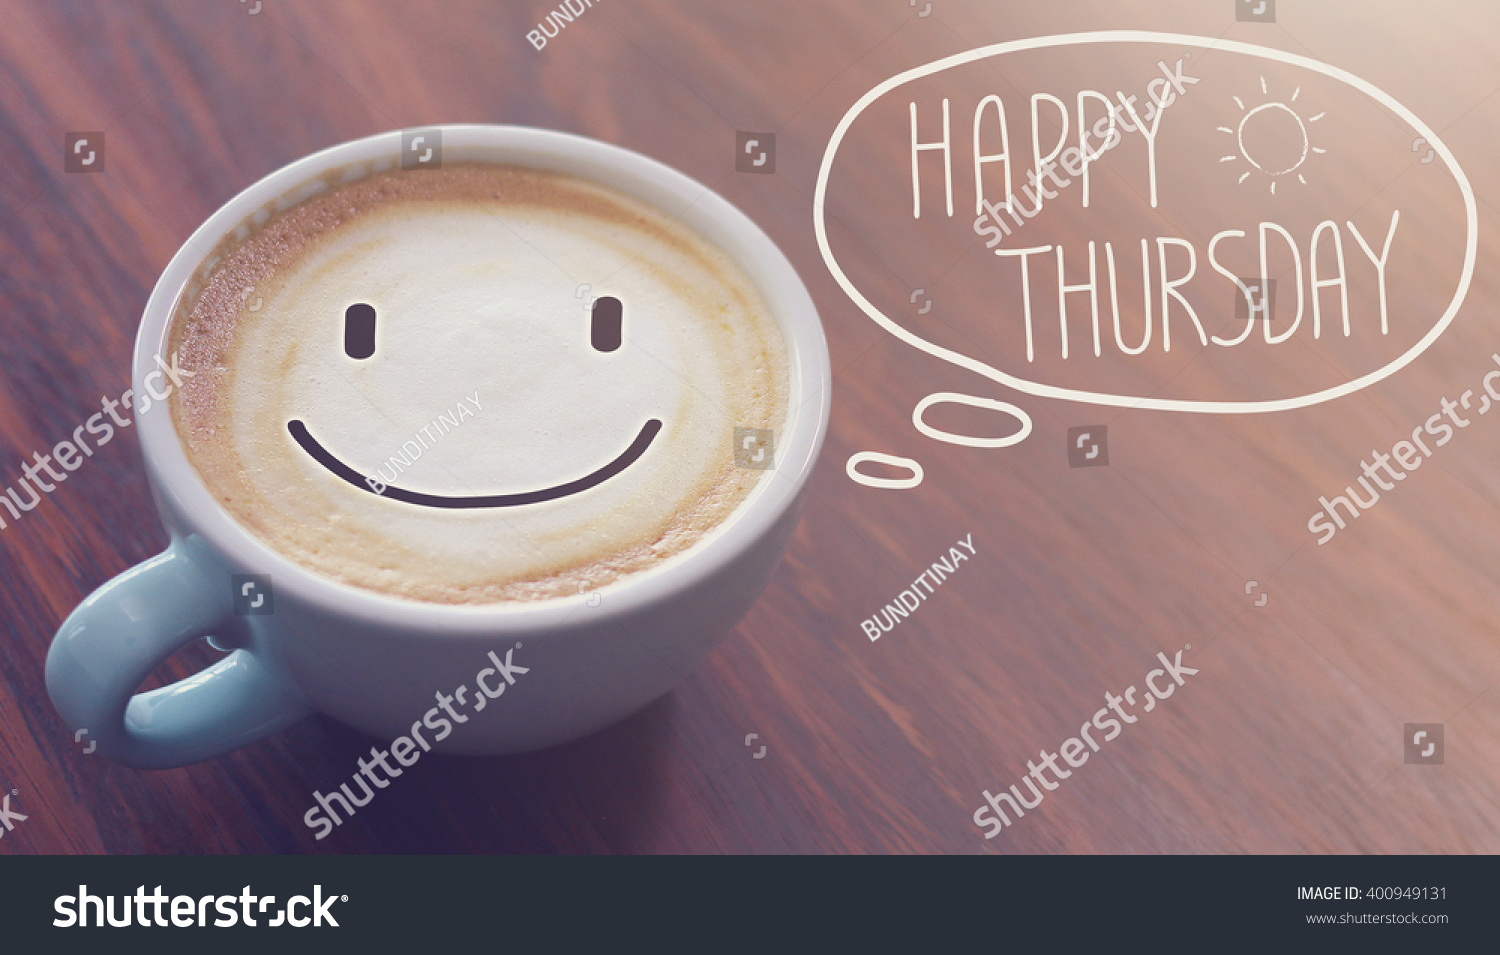 Happy Thursday Coffee Cup Background - 419.2KB